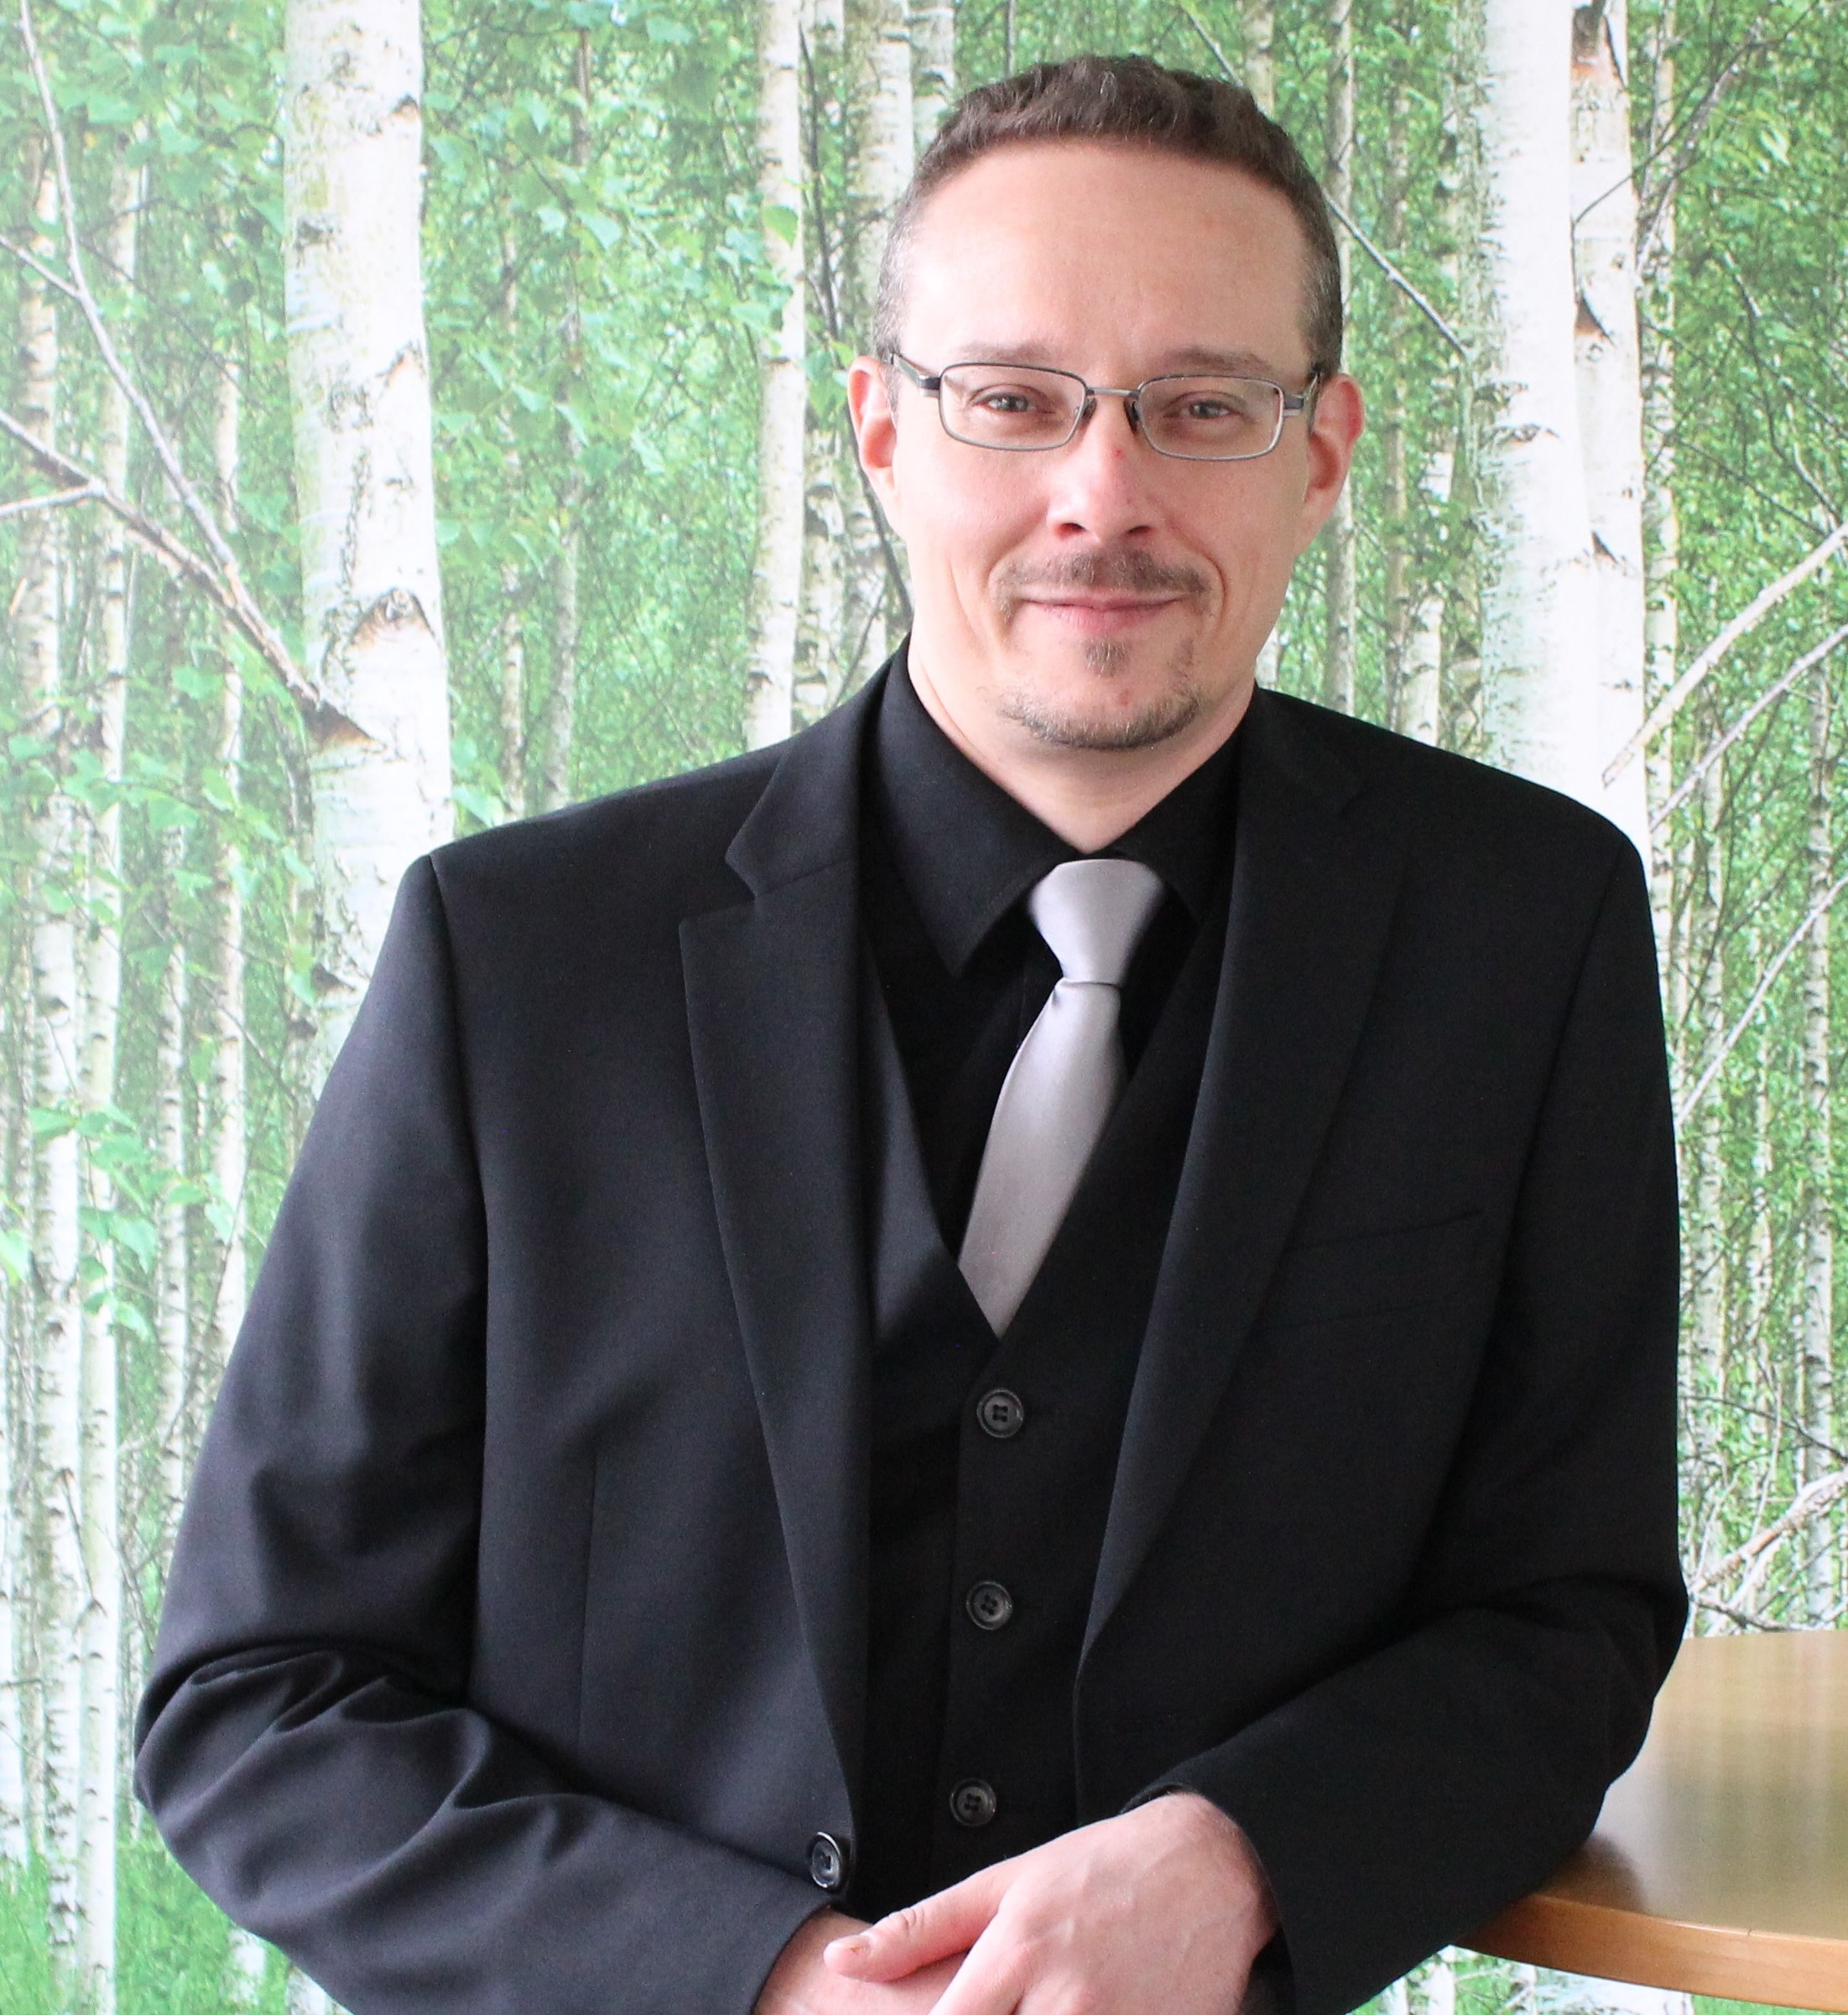 Photo of Toni Ryynänen